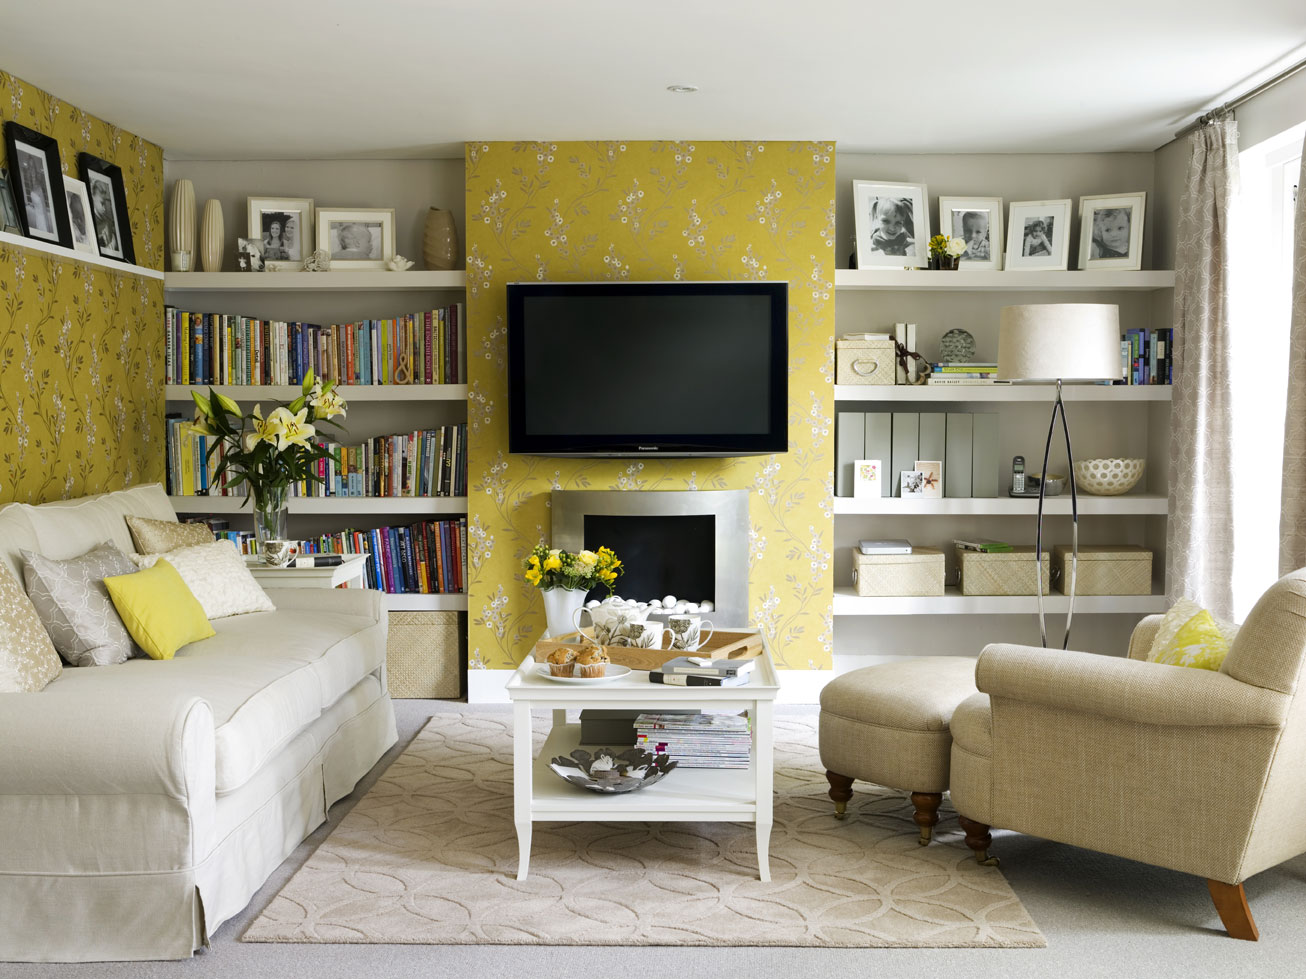 Painter and decorator in watford hemel hempstead watford - Feature walls in living rooms ideas ...